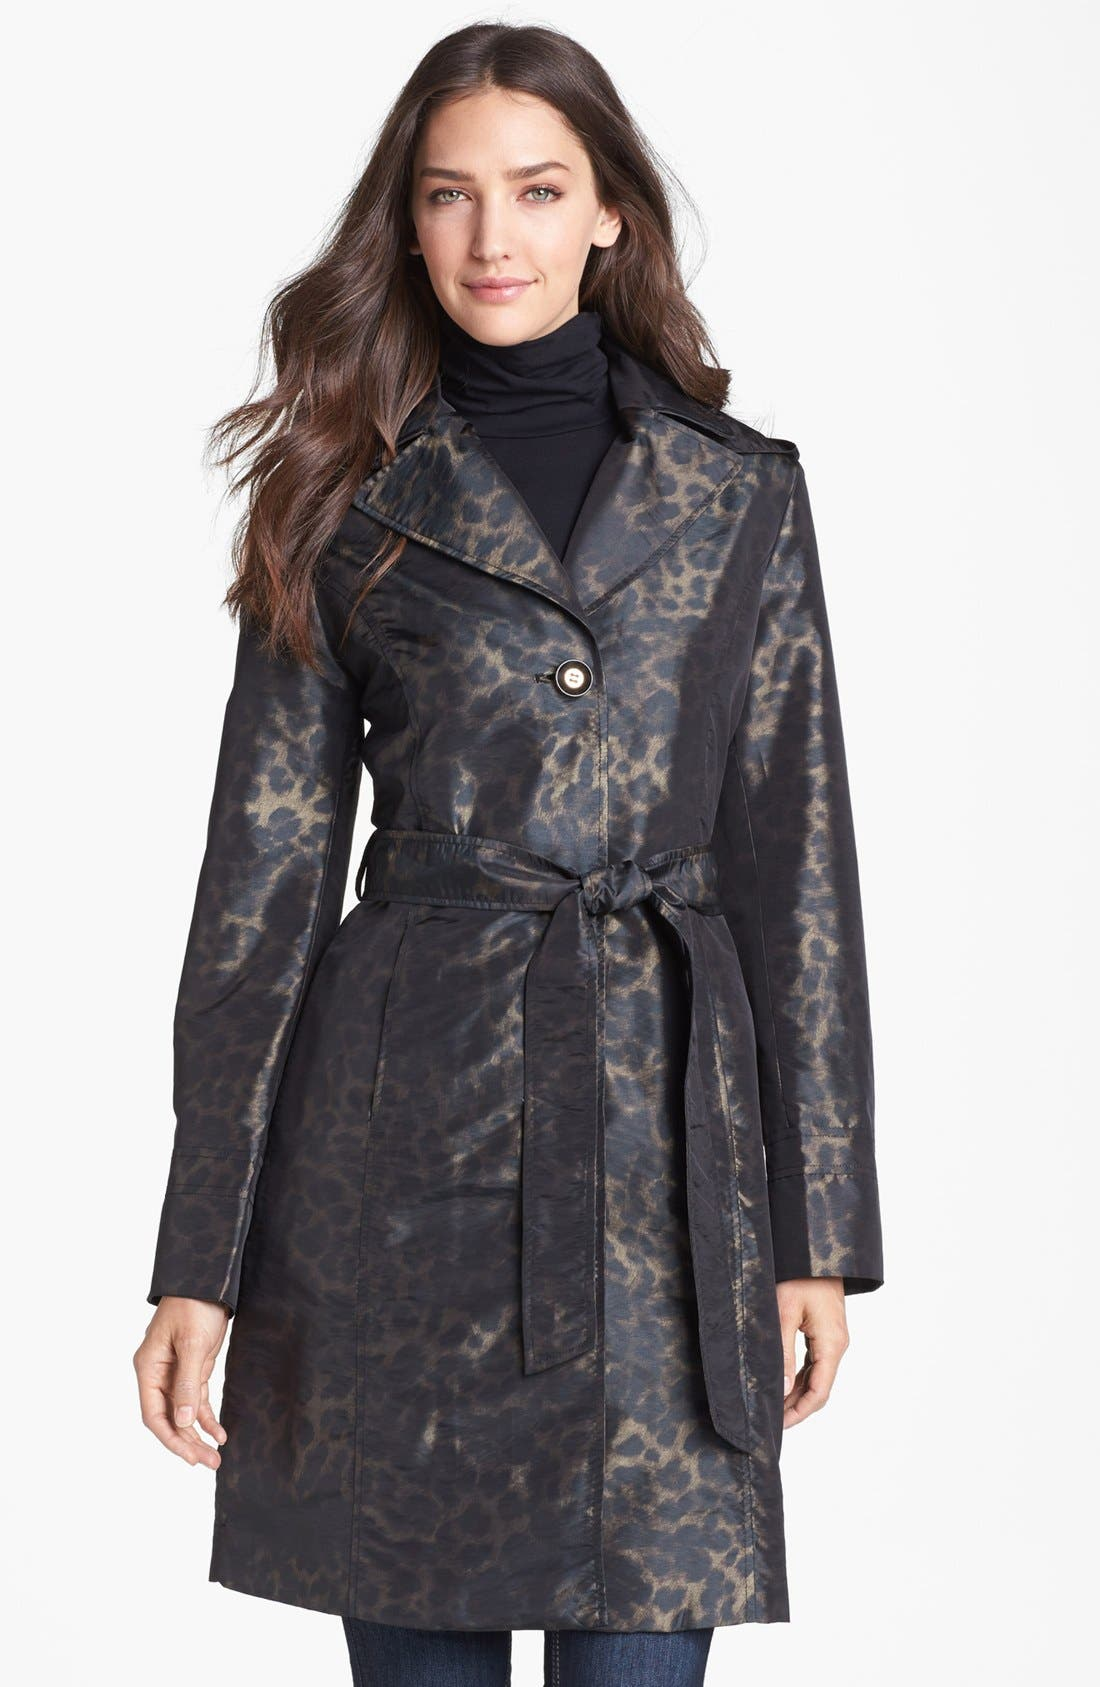 Alternate Image 1 Selected - Ellen Tracy Belted Leopard Print Raincoat (Online Only)